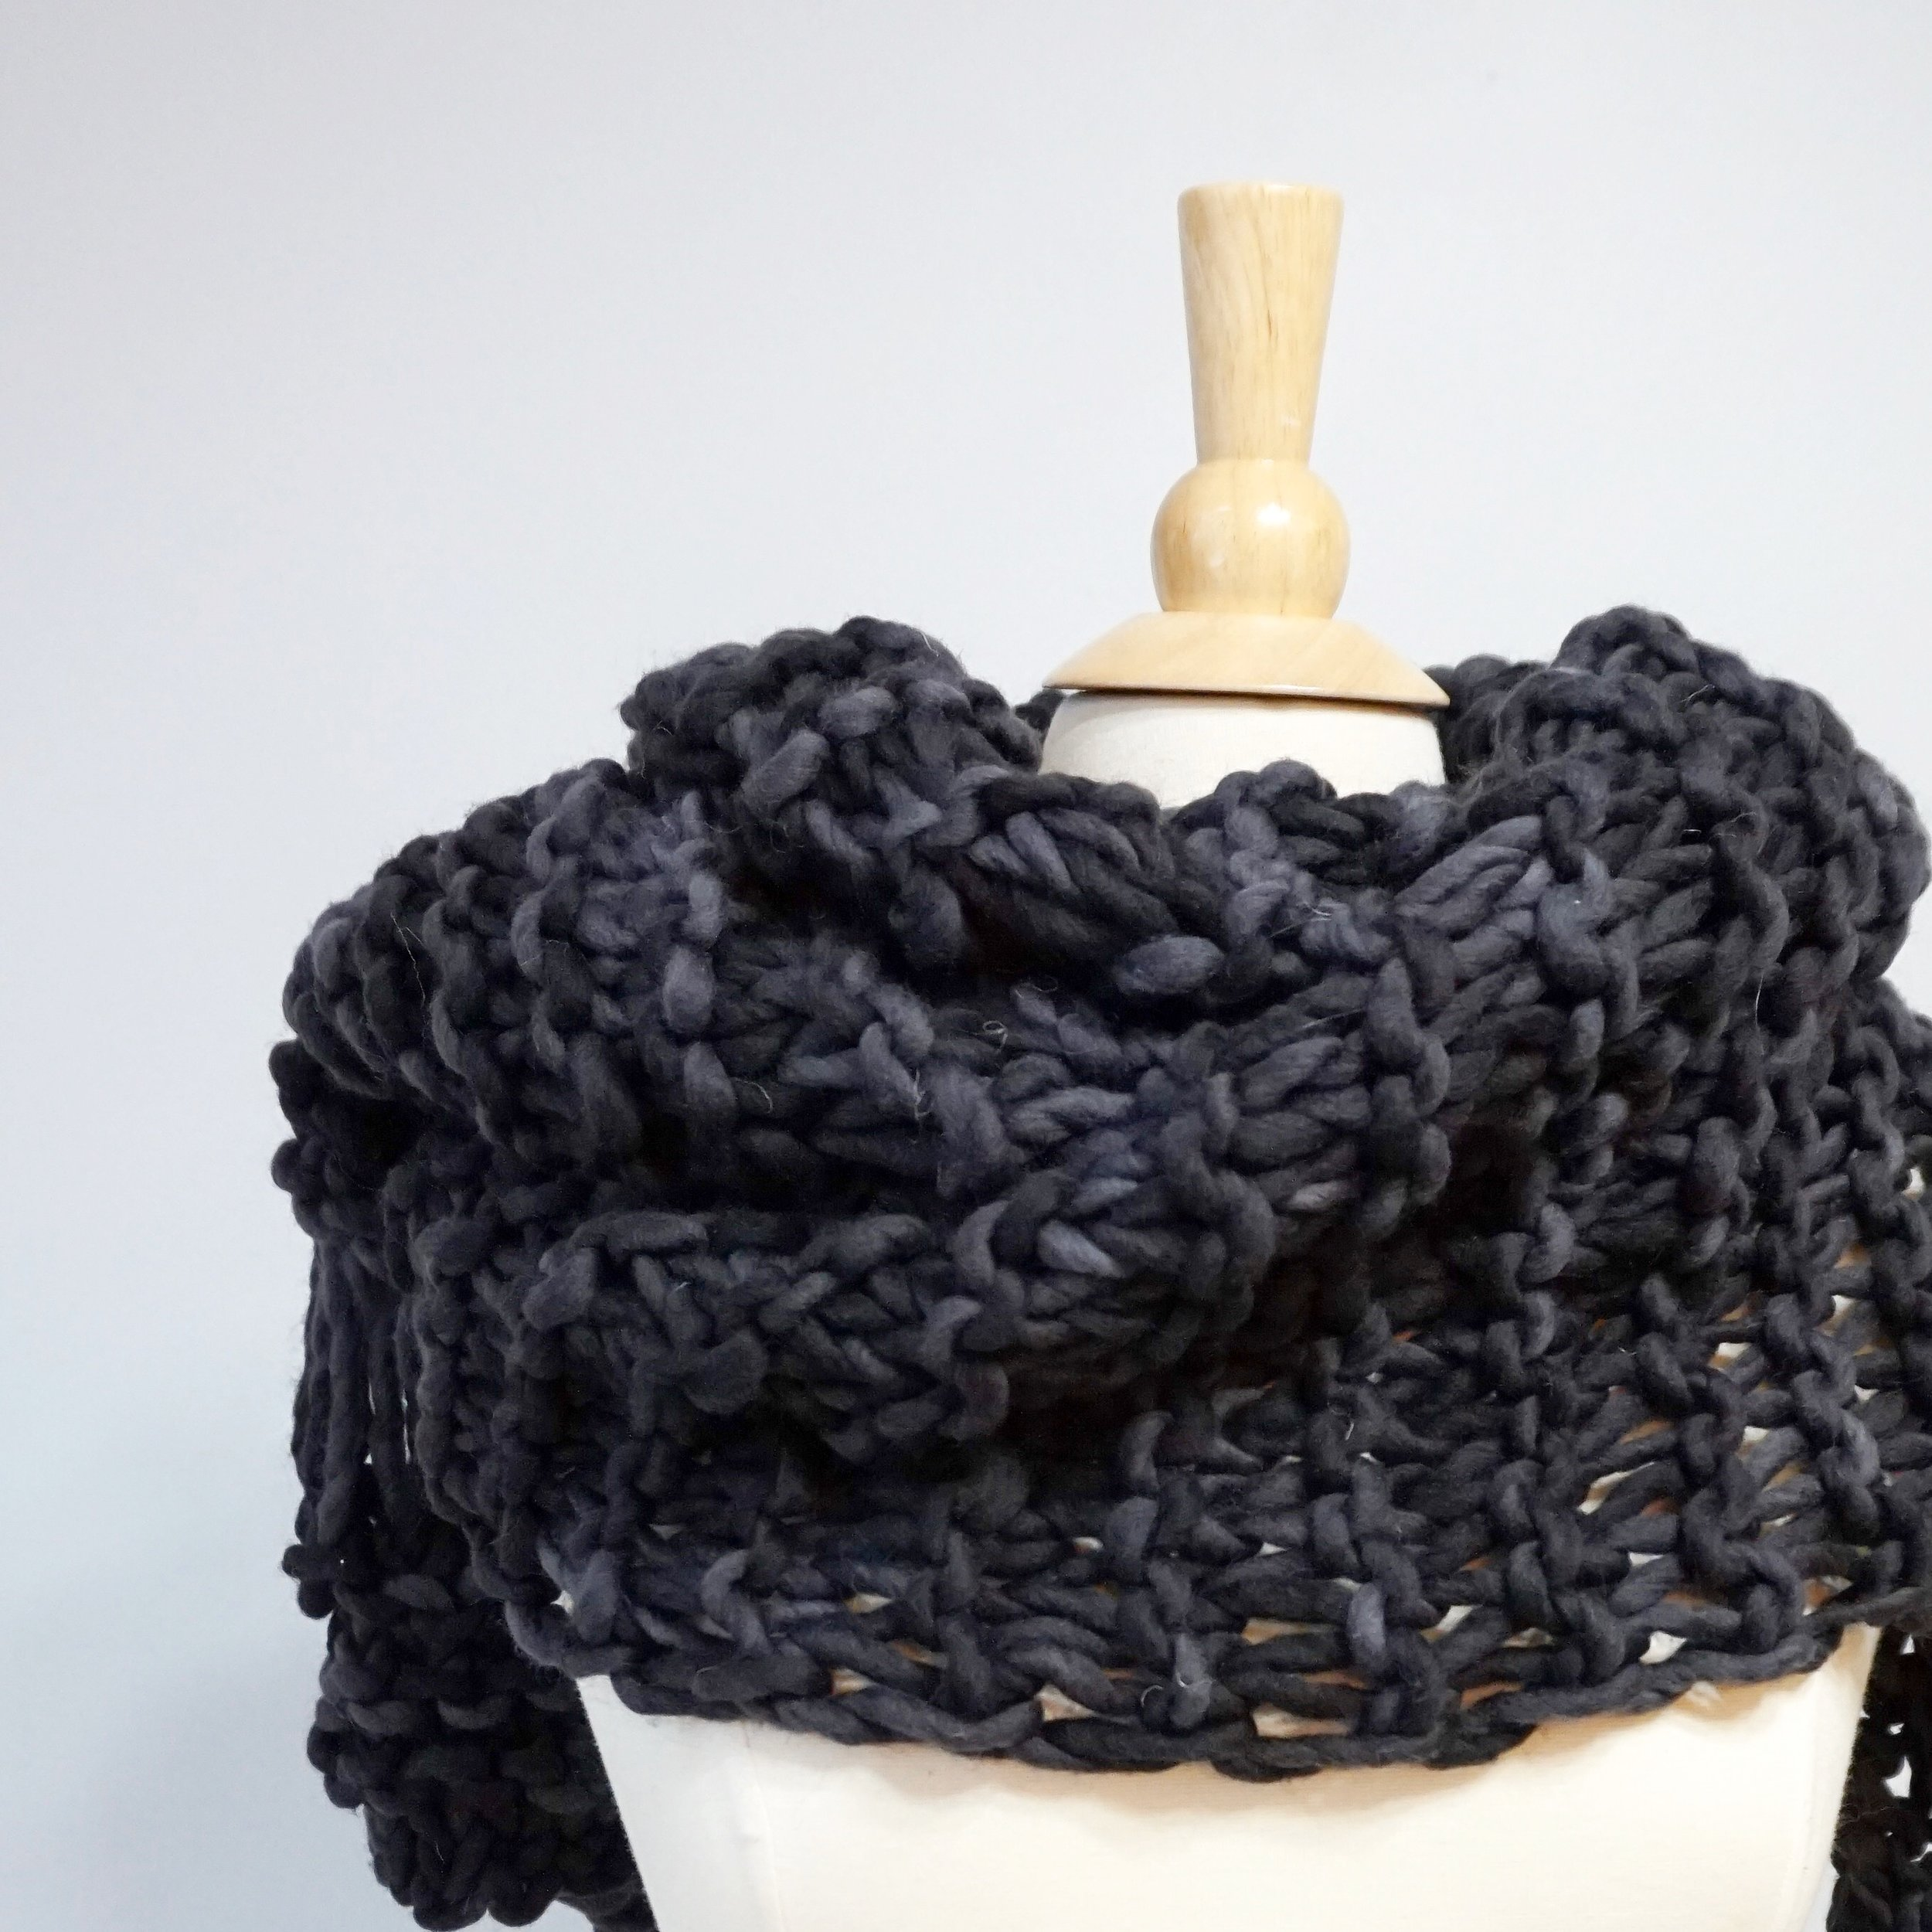 Tuckoe Scarf Knitting Pattern — 144 Stitches